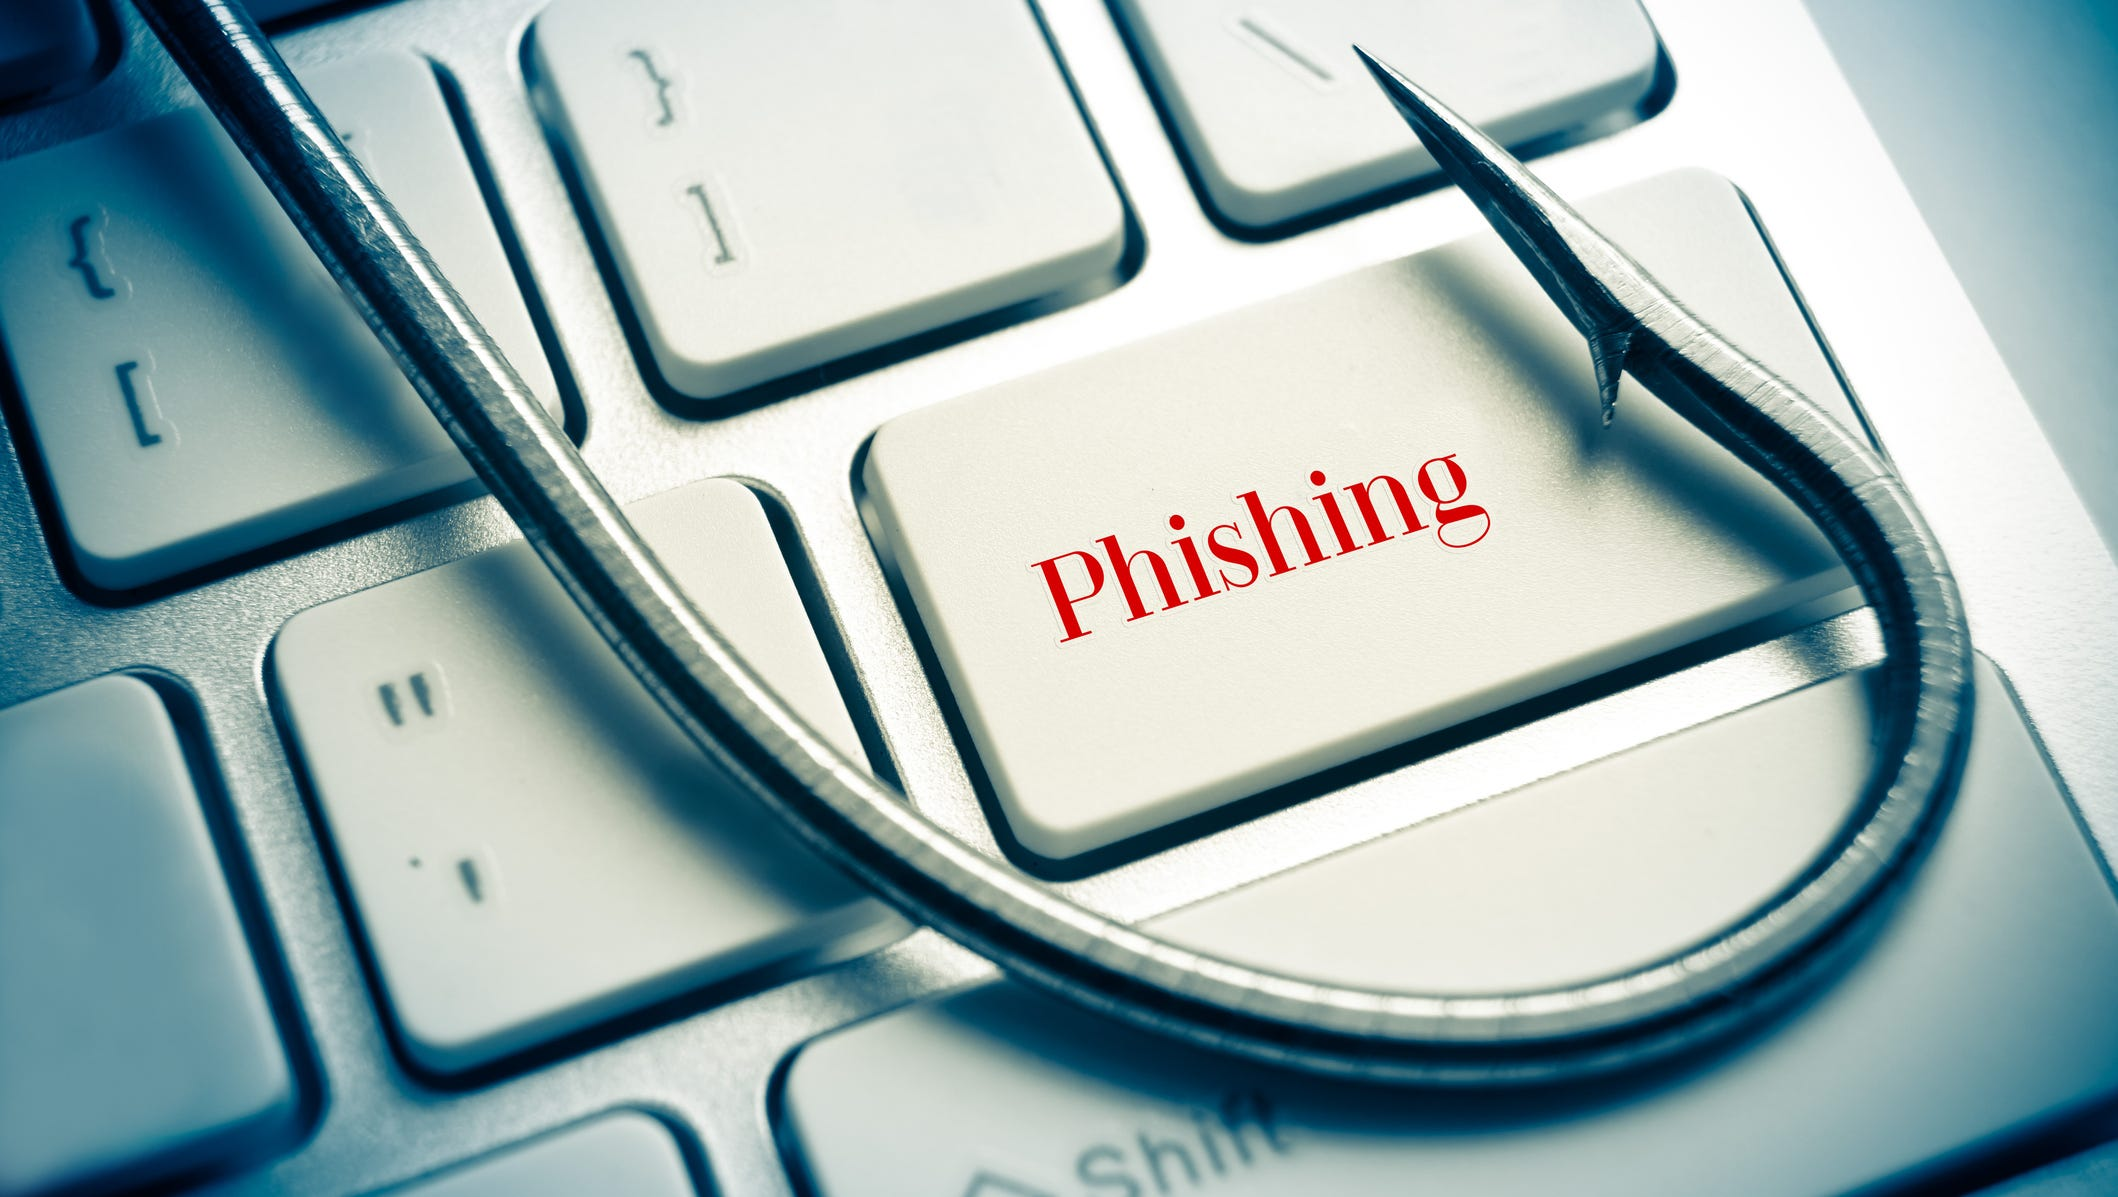 Top ways to protect your business against phishing attacks